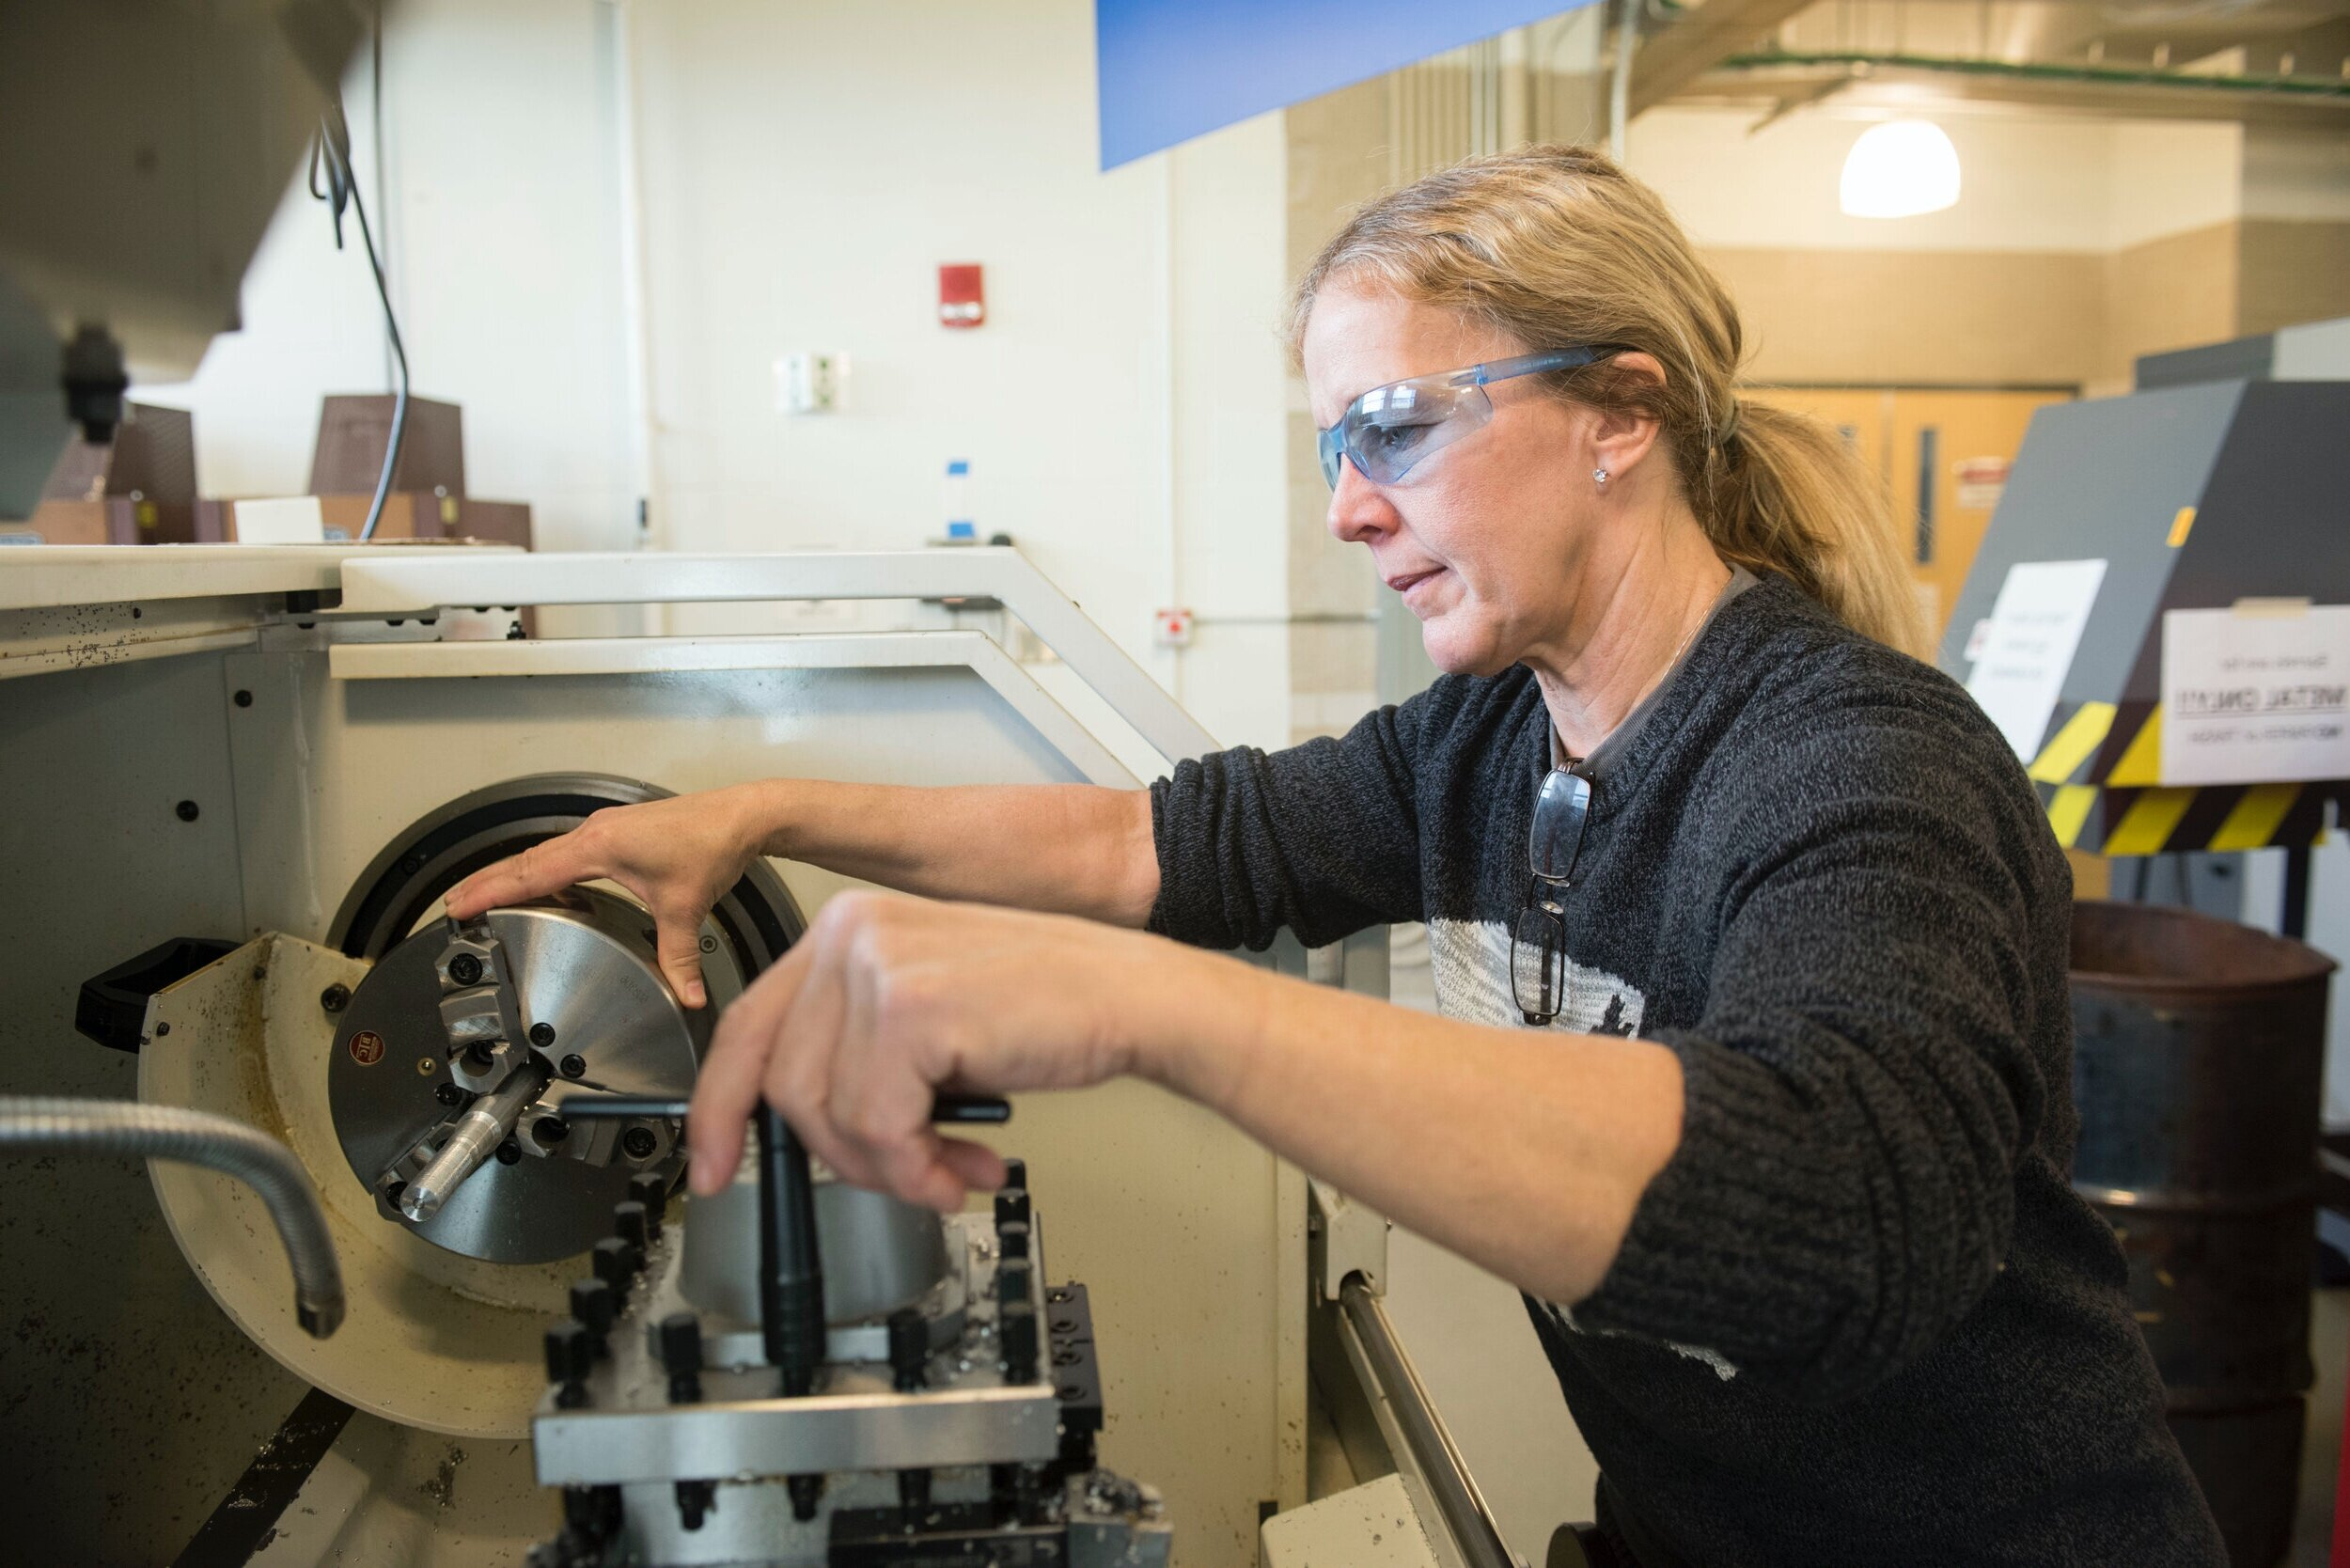 Connecticut College of Technology - Seamless Career Transfer Pathways in Engineering and Technology.Click here to learn more about the College of Technology Pathway Programs.